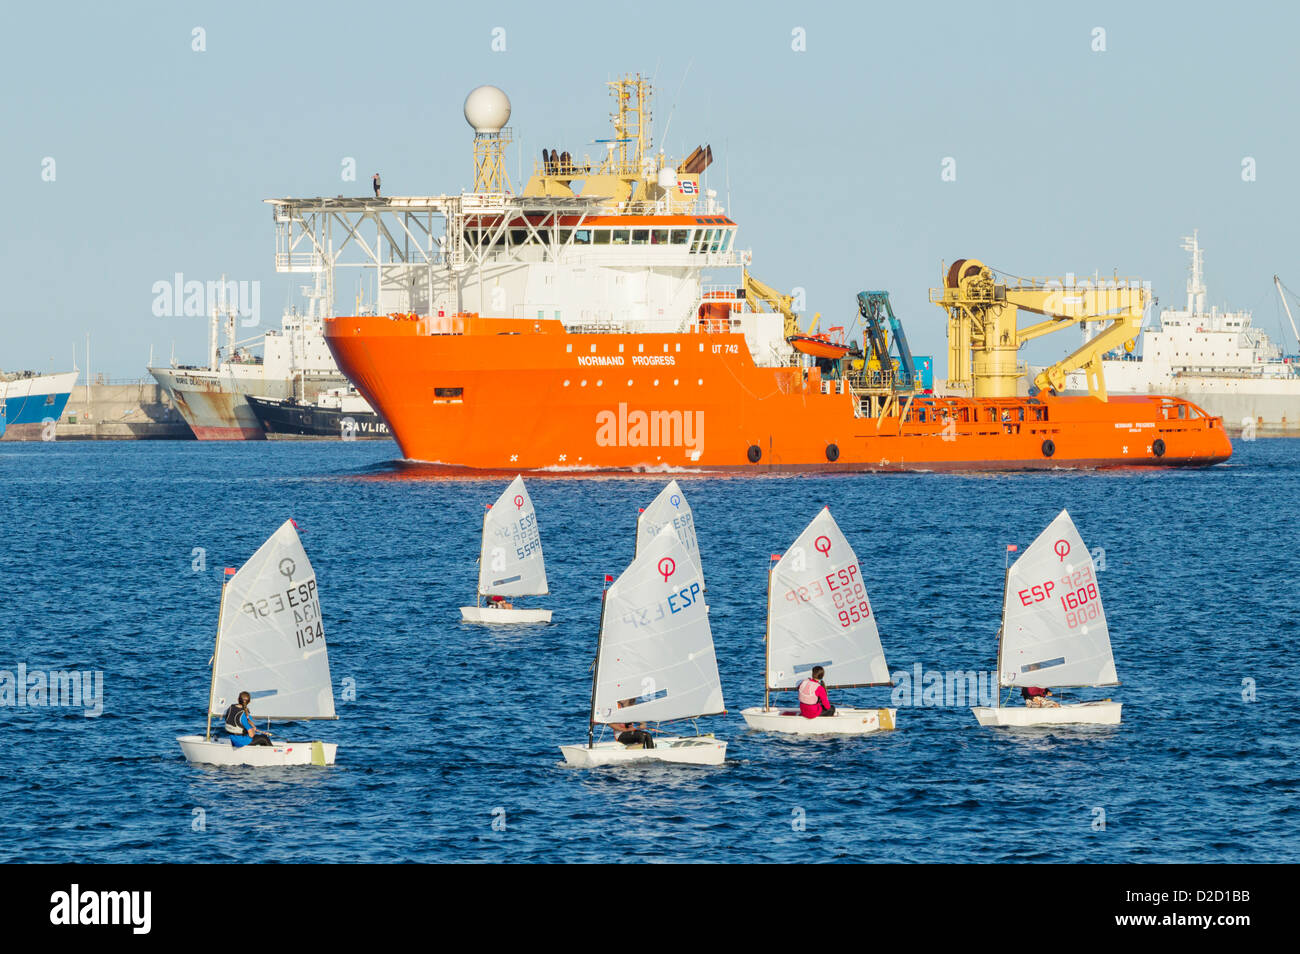 Optimist dinghies sailing in Las Palmas port on Gran Canaria - Stock Image